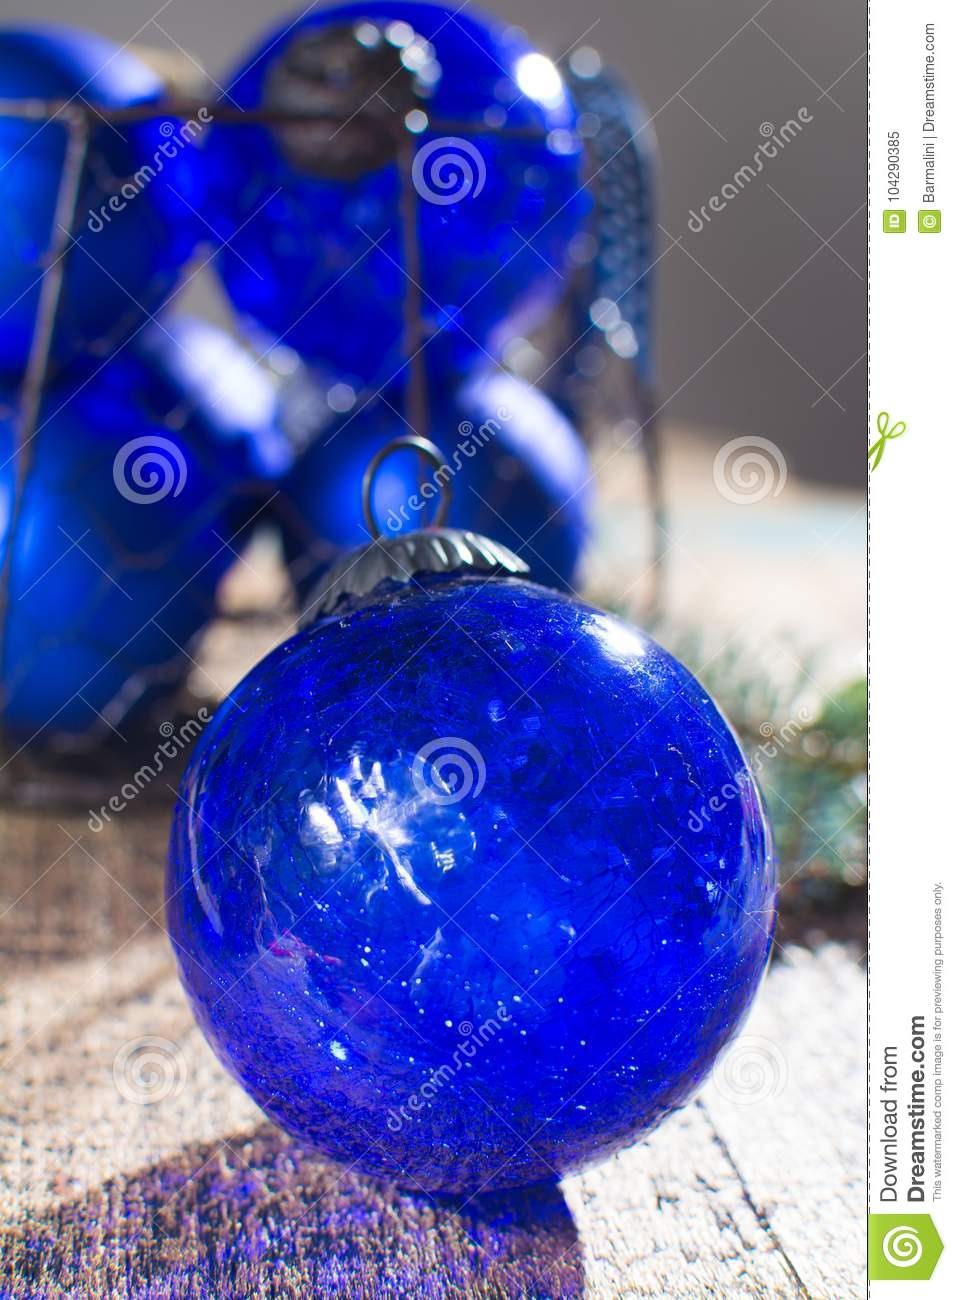 Old Vintage Cobalt Blue Christmas Tree Balls From Glass Stock Image Image Of Holiday Christmas 104290385